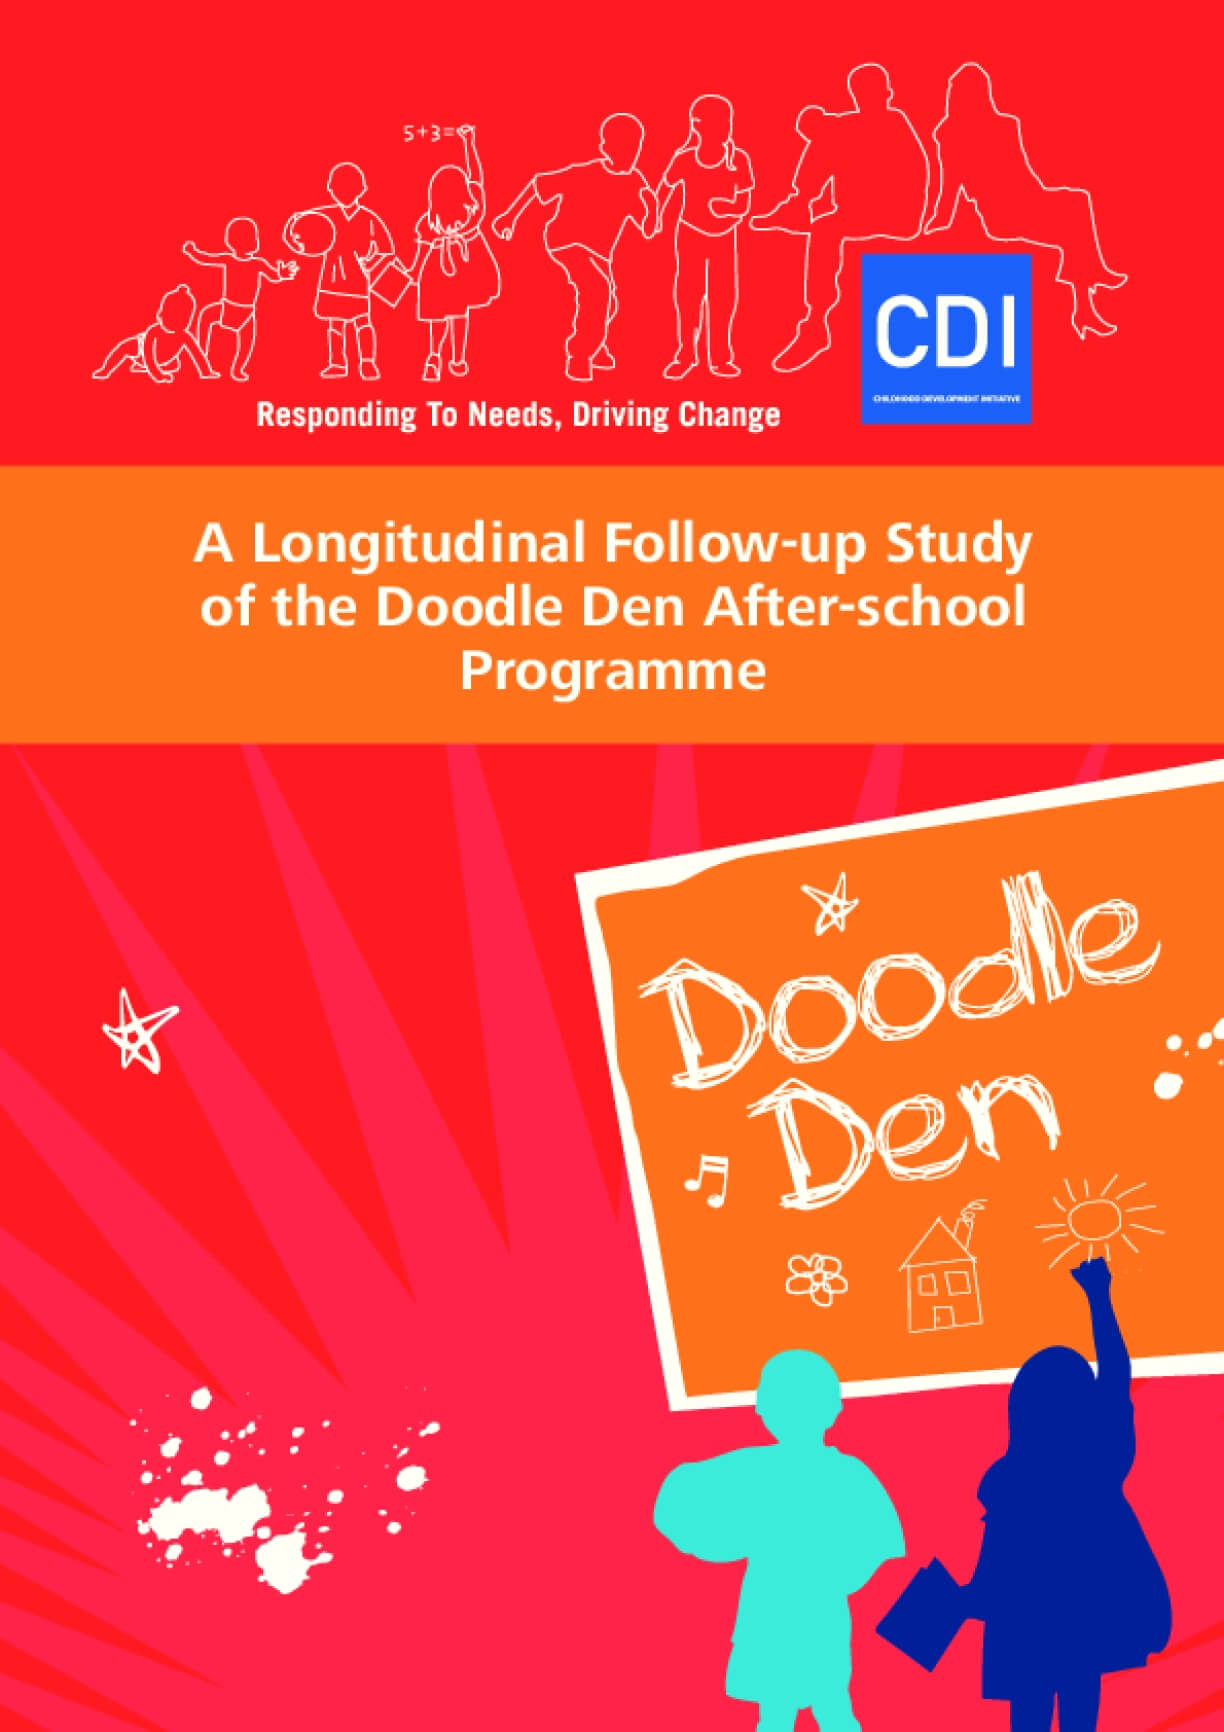 A Longitudinal Follow-up Study of the Doodle Den After-school Programme Childhood Development Initiative